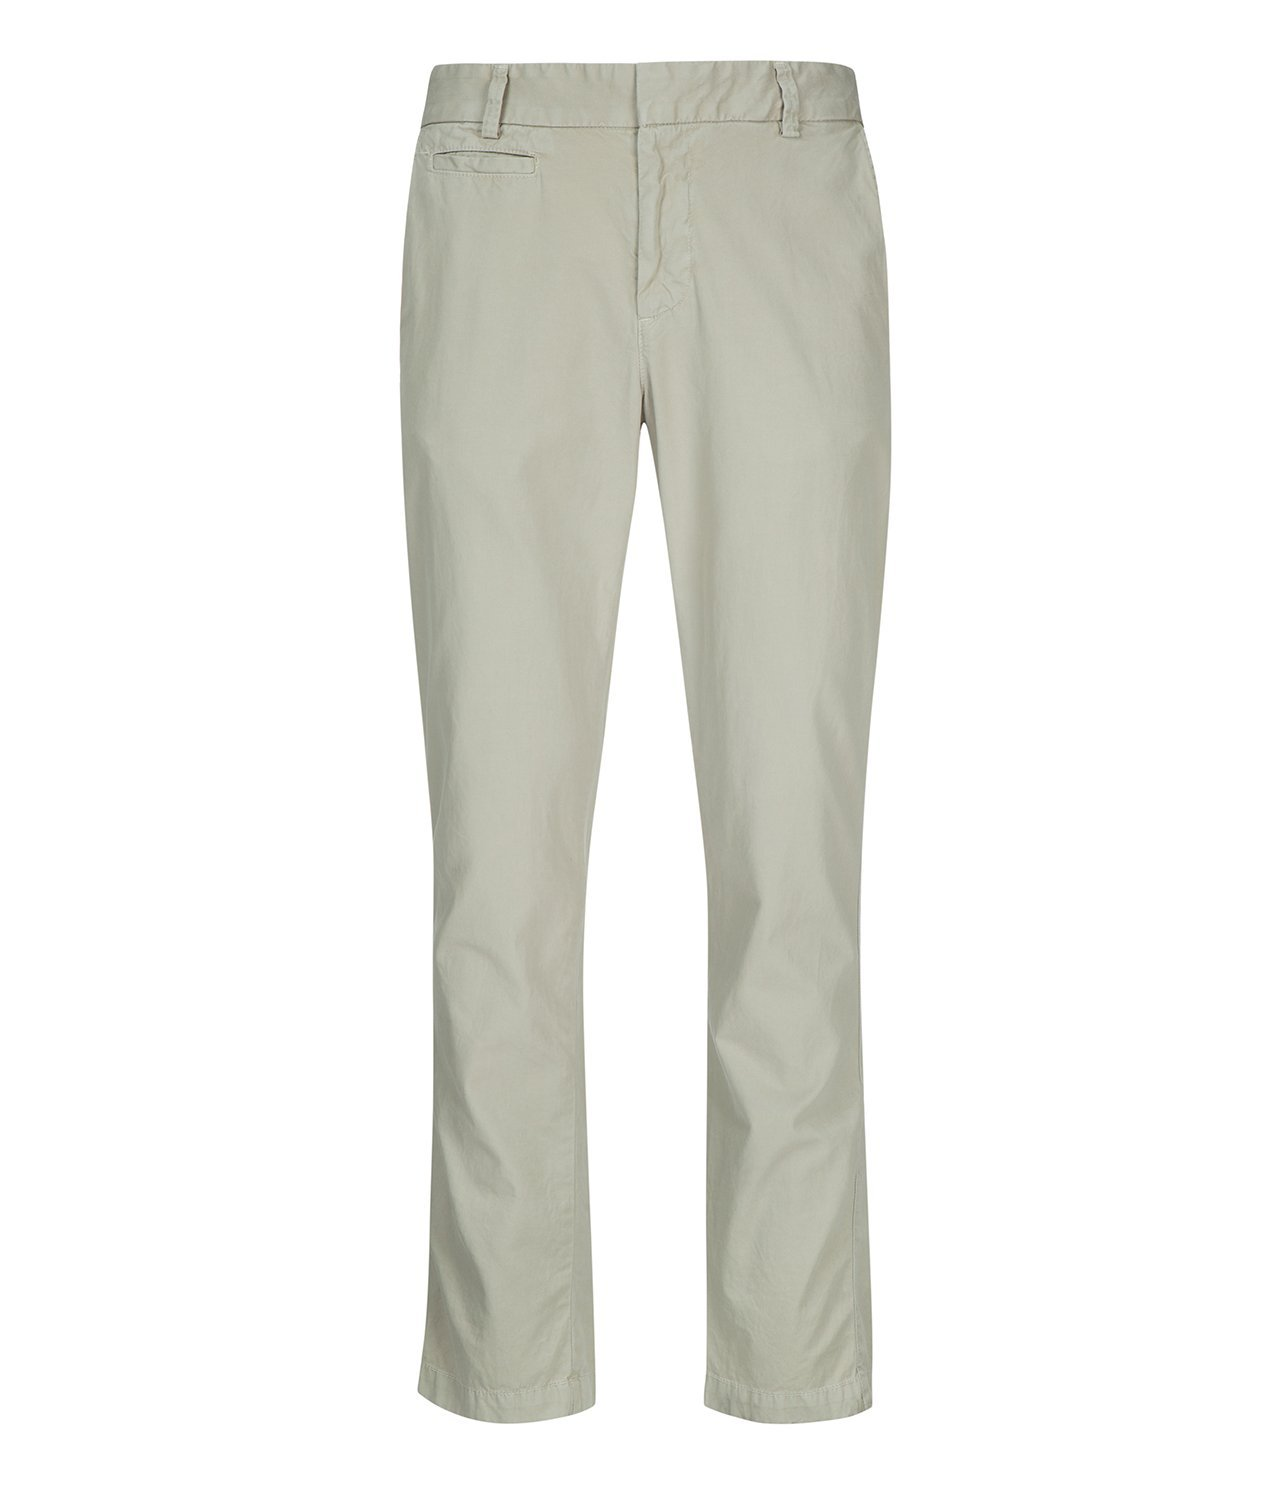 Save Khaki Men's Slim Trouser SK933-US Light Khaki SZ 32